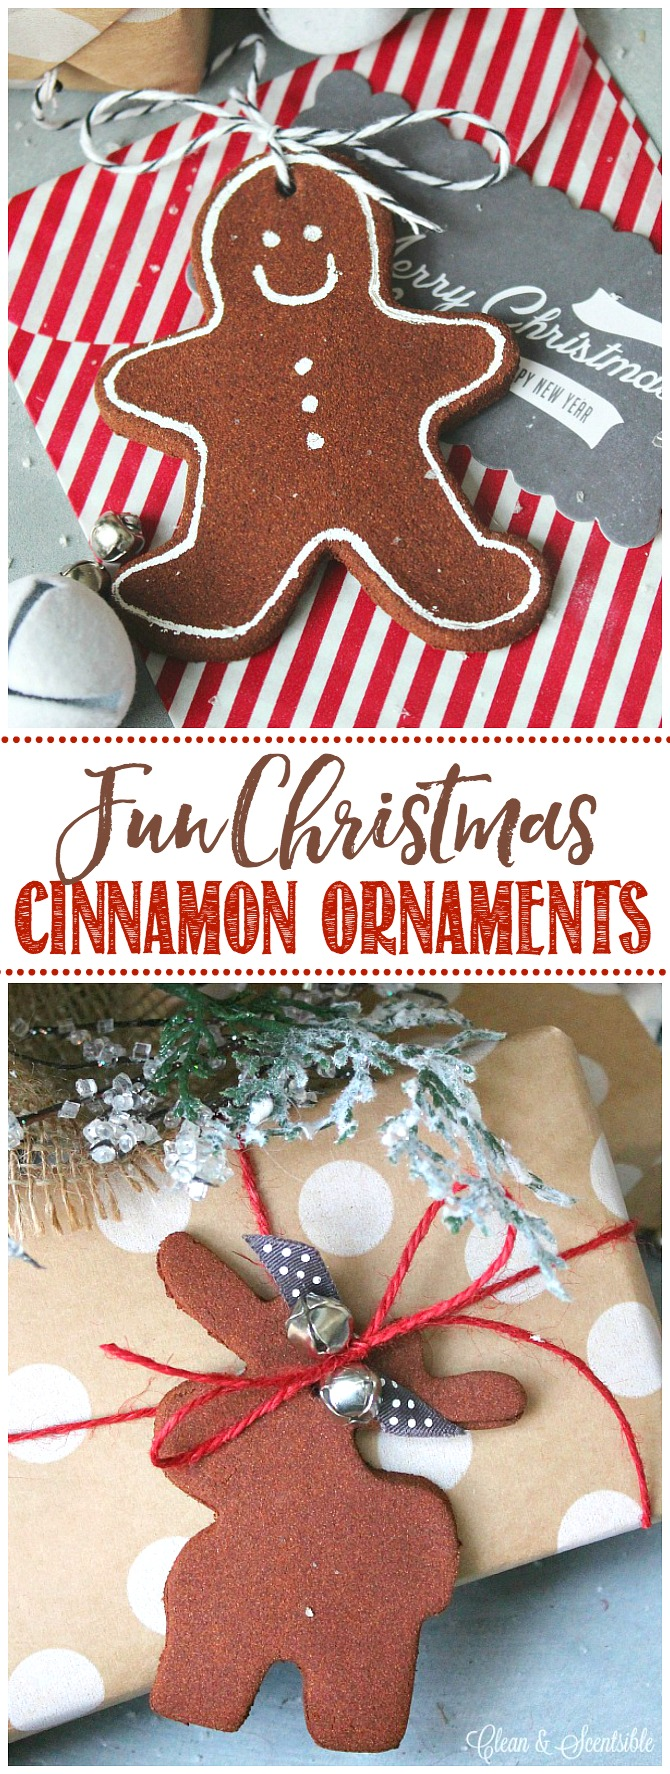 Christmas cinnamon ornaments using a gingerbread man and moose cookie cutters. Used as cute present toppers!